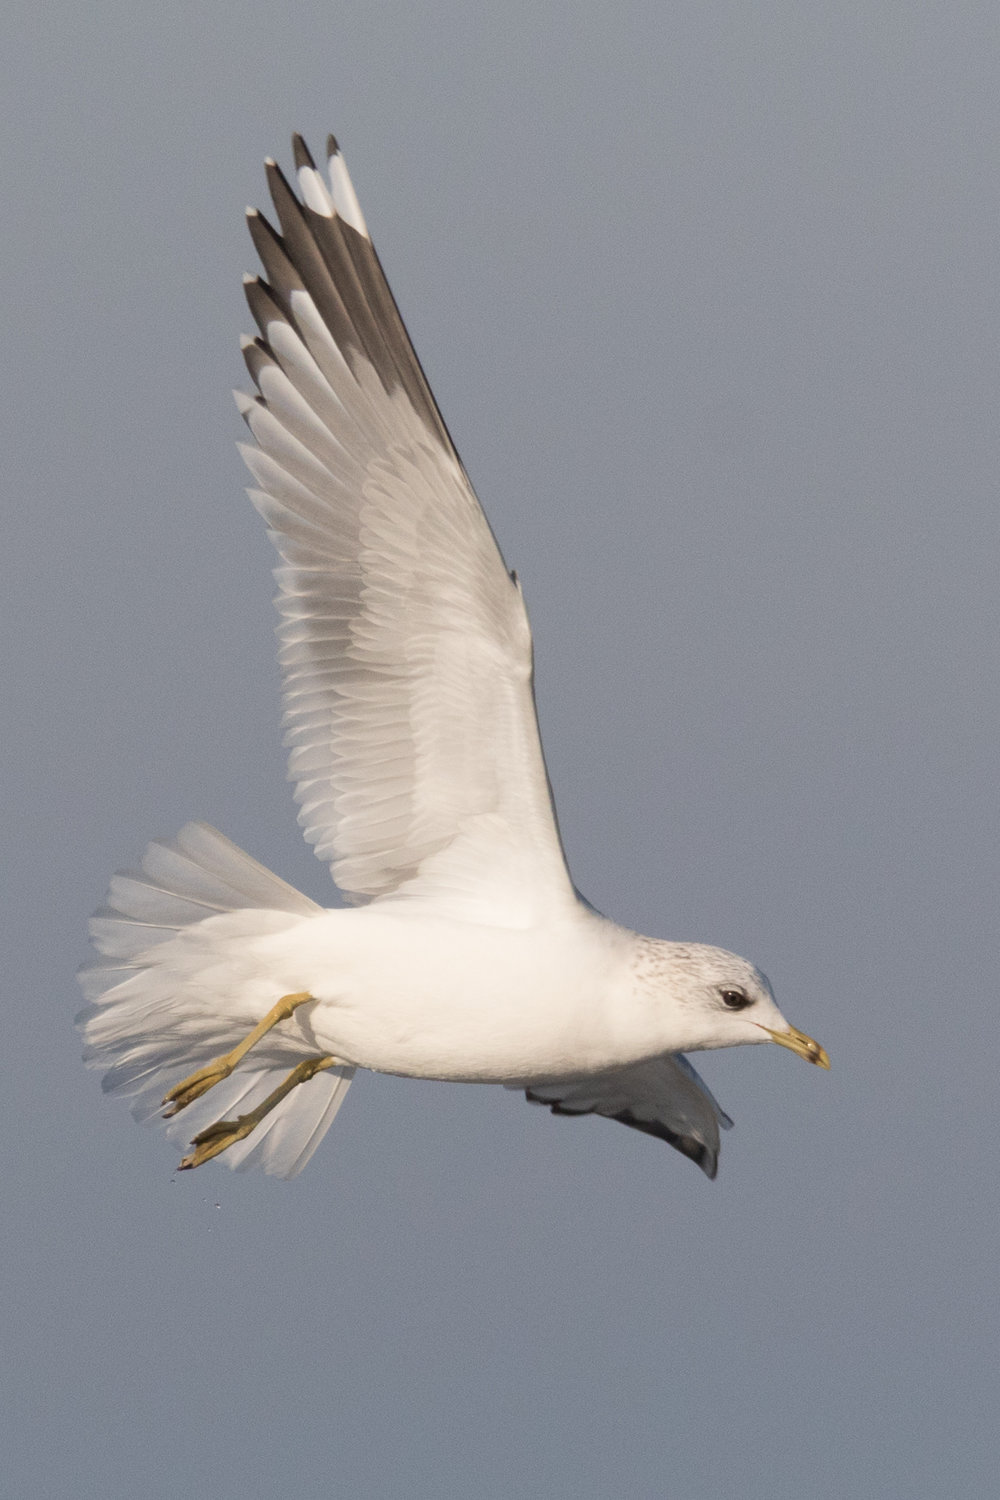 20170121-Common Gull Adult-164.jpg